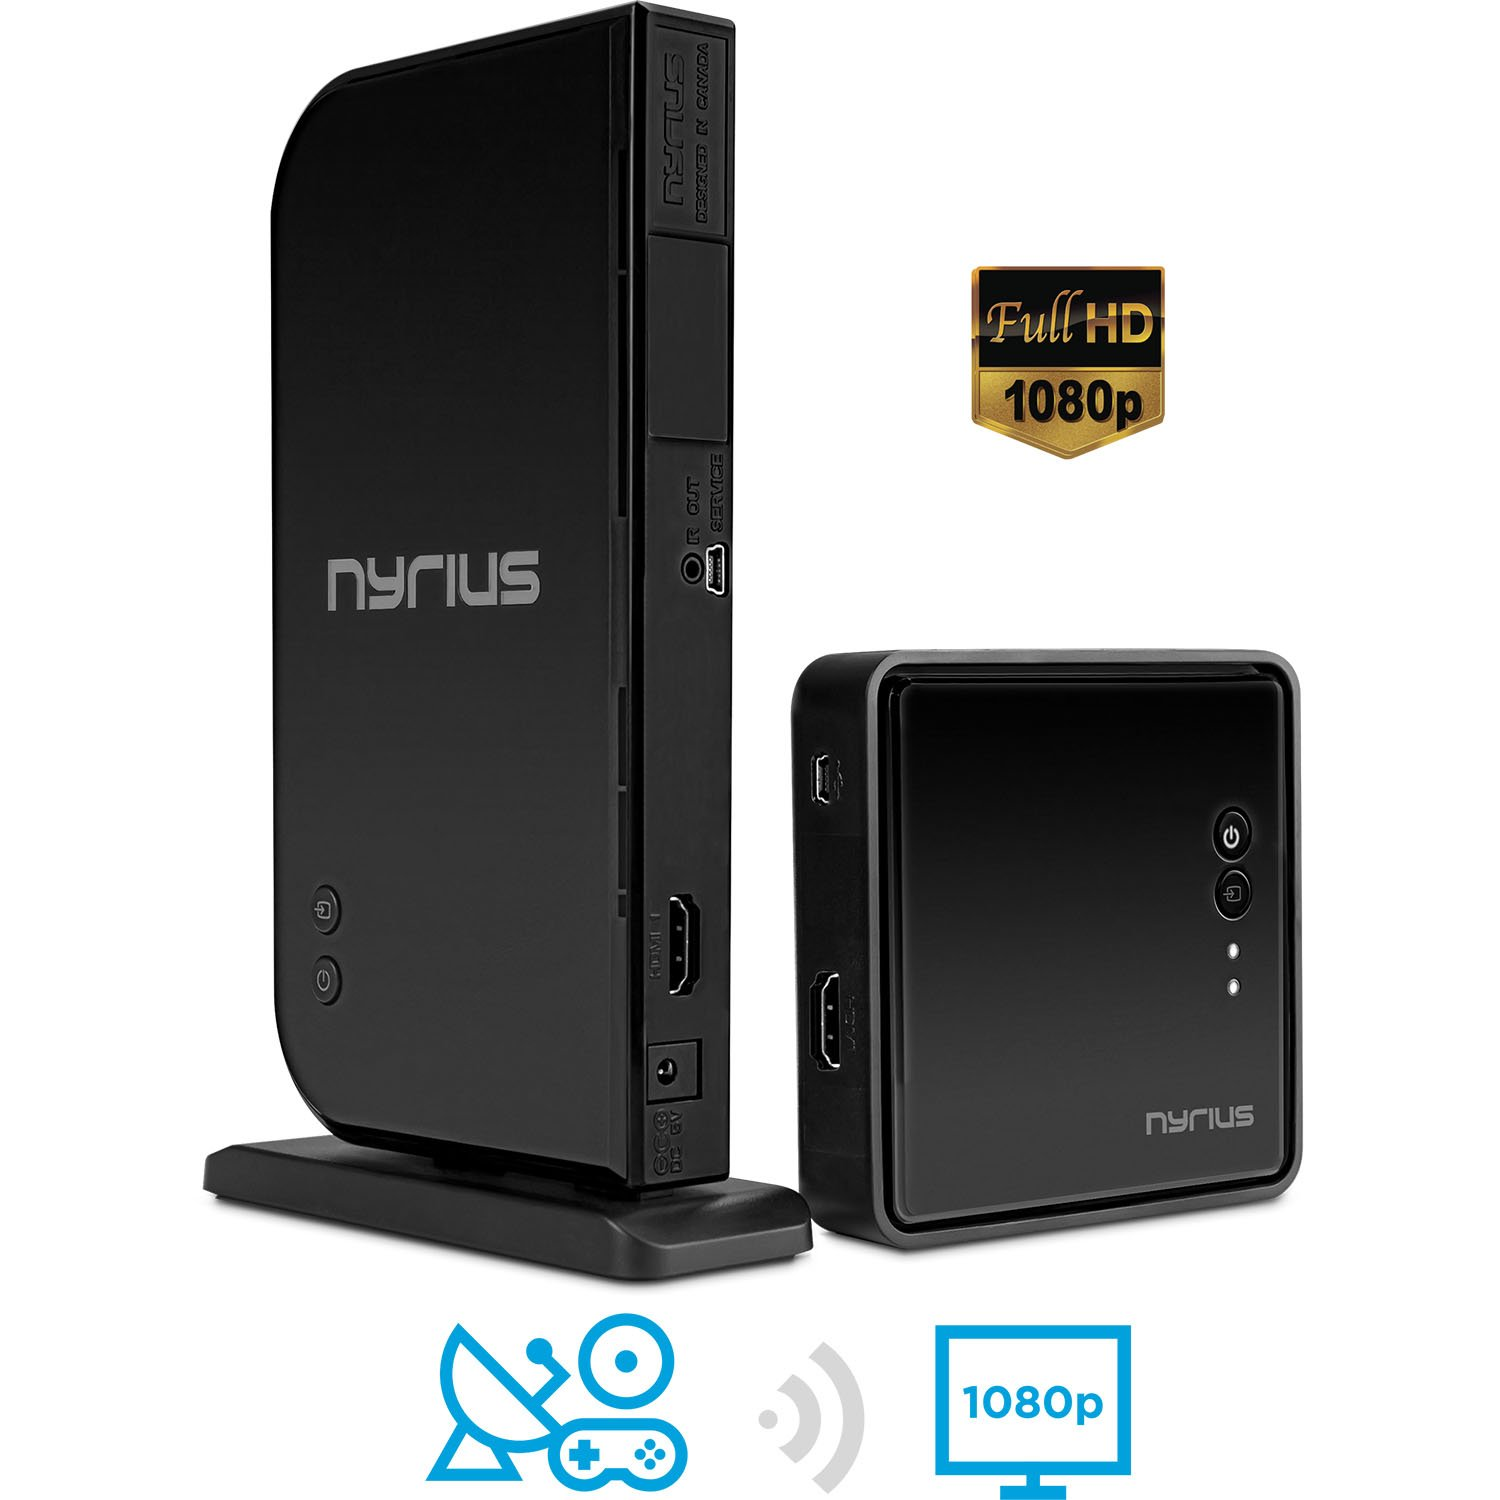 Nyrius ARIES Home HDMI Digital Wireless Transmitter Receiver For HD 1080p Video Streaming Cable Box Satellite Bluray